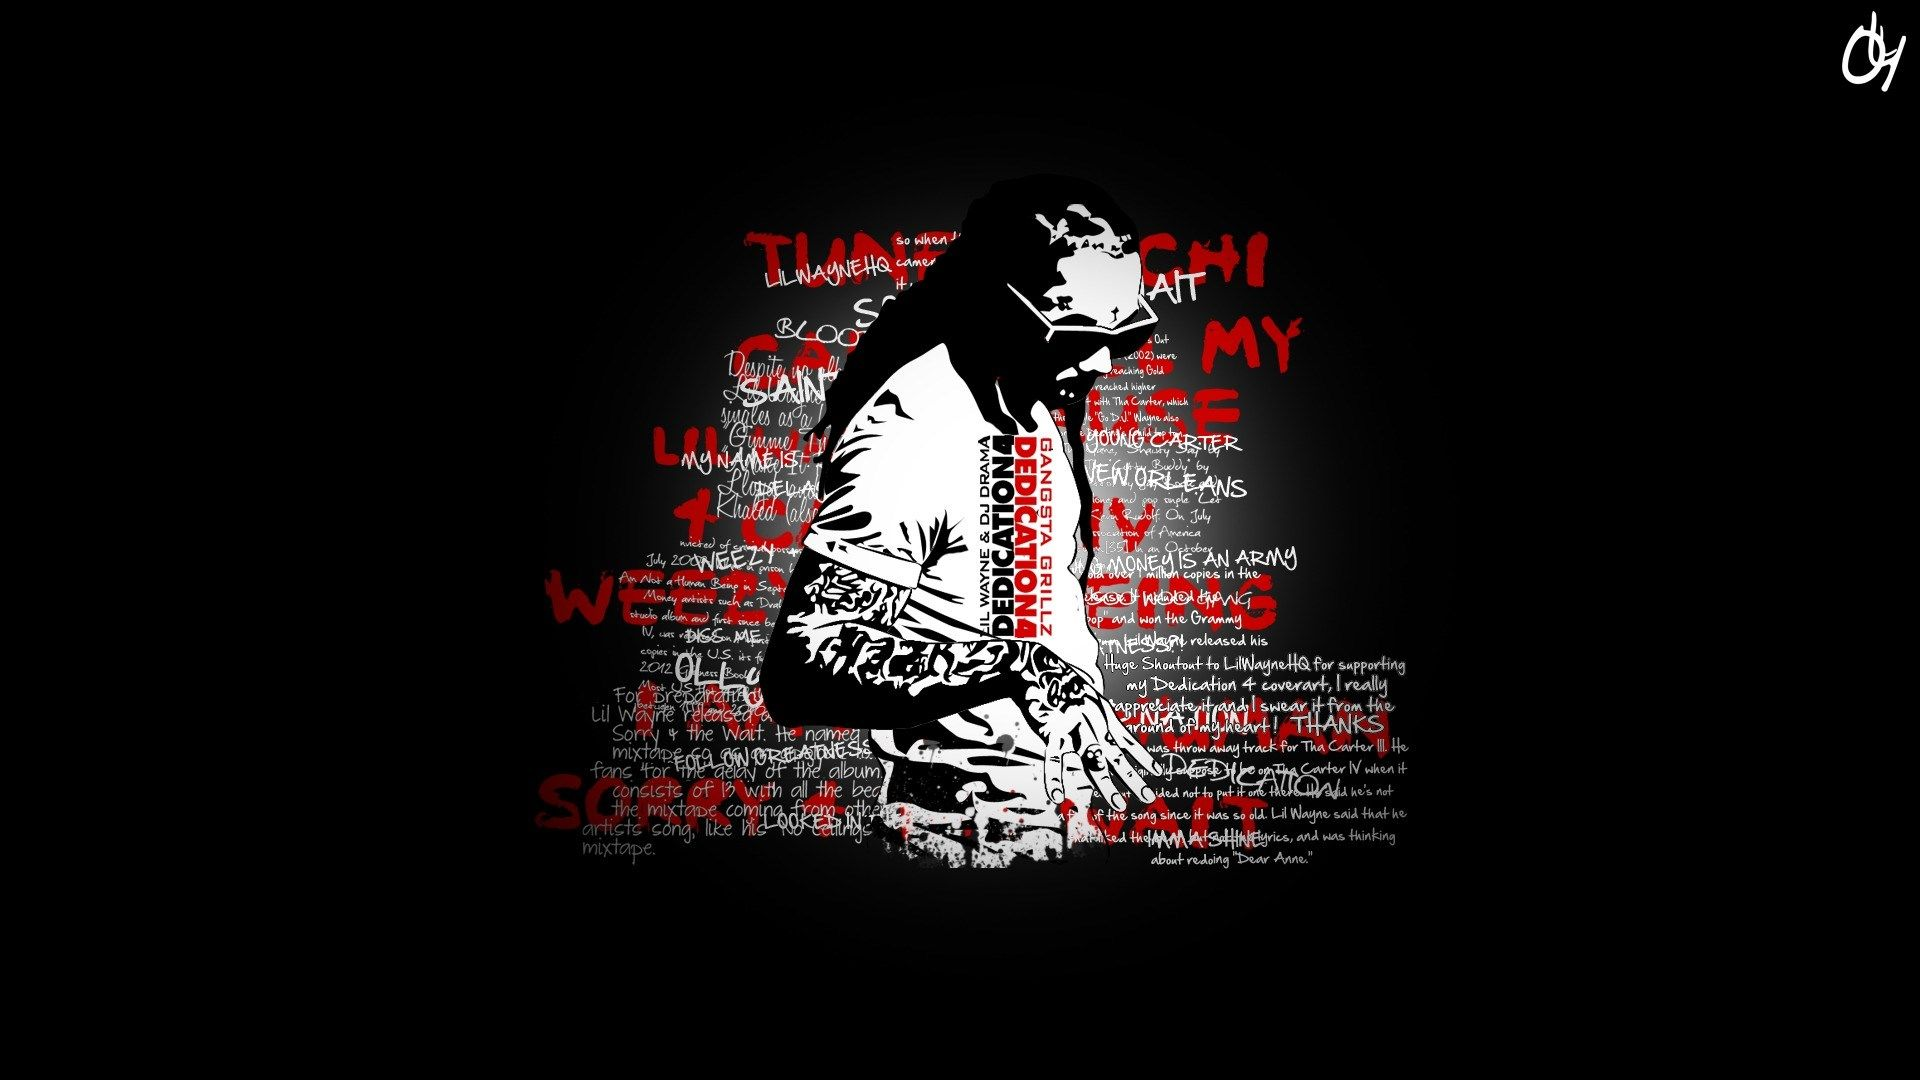 lil wayne rap wallpaper Rap wallpaper, Lil wayne, Rap